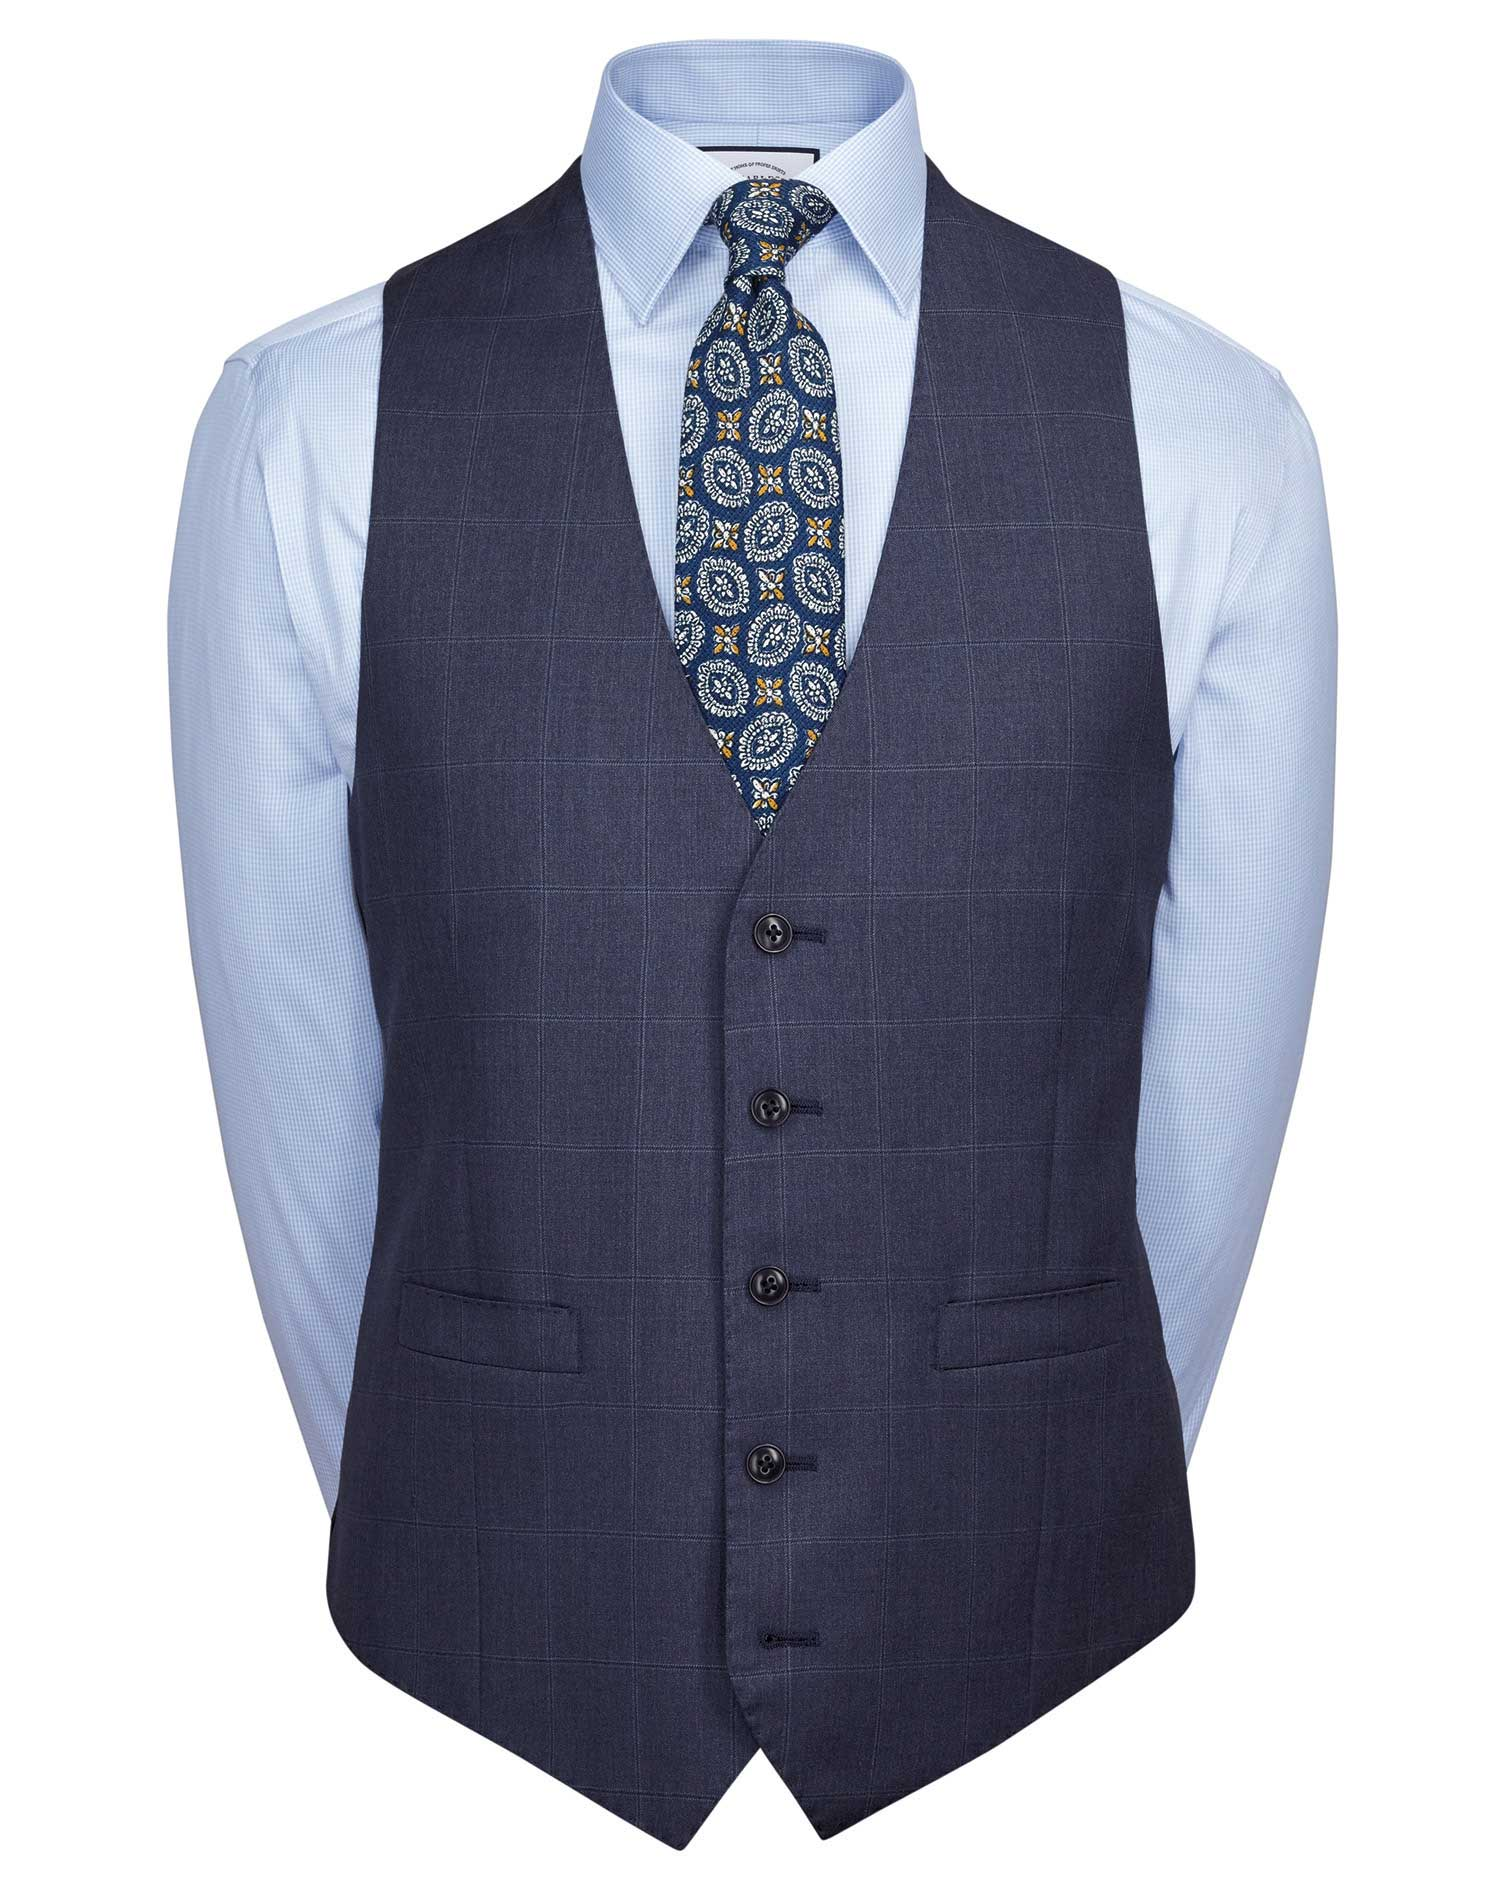 Image of Charles Tyrwhitt Airforce Blue Adjustable Fit Italian Suit Wool Waistcoat Size w36 by Charles Tyrwhitt